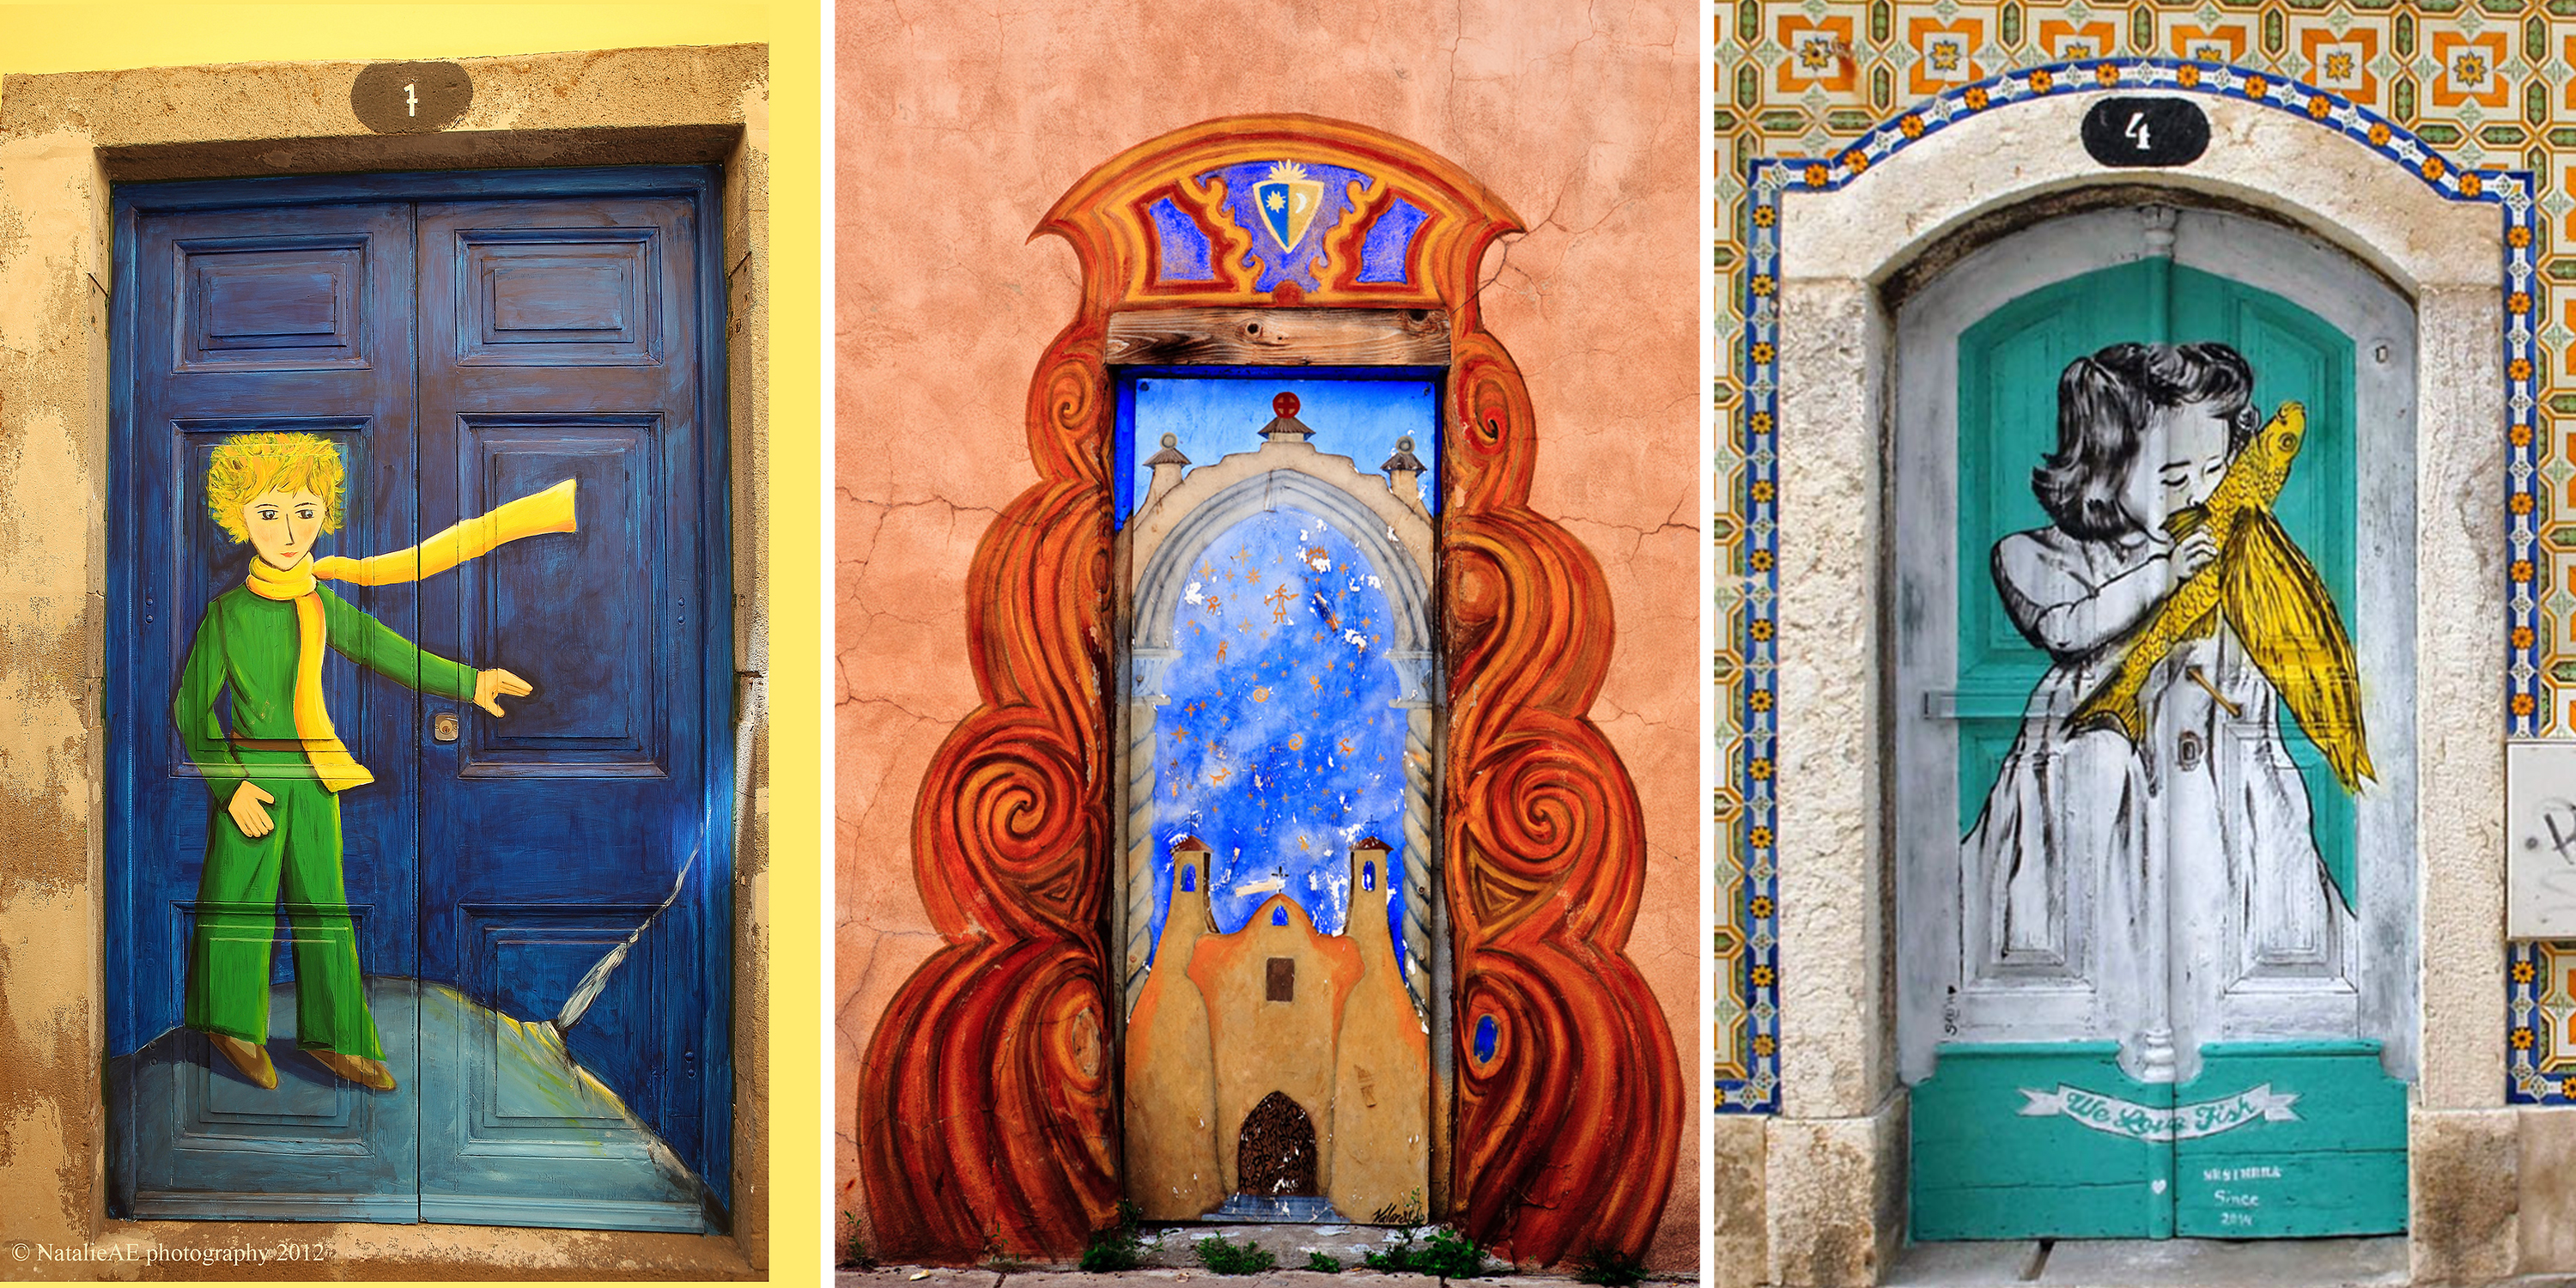 & 25 Of The Most Beautiful Doors Around The World